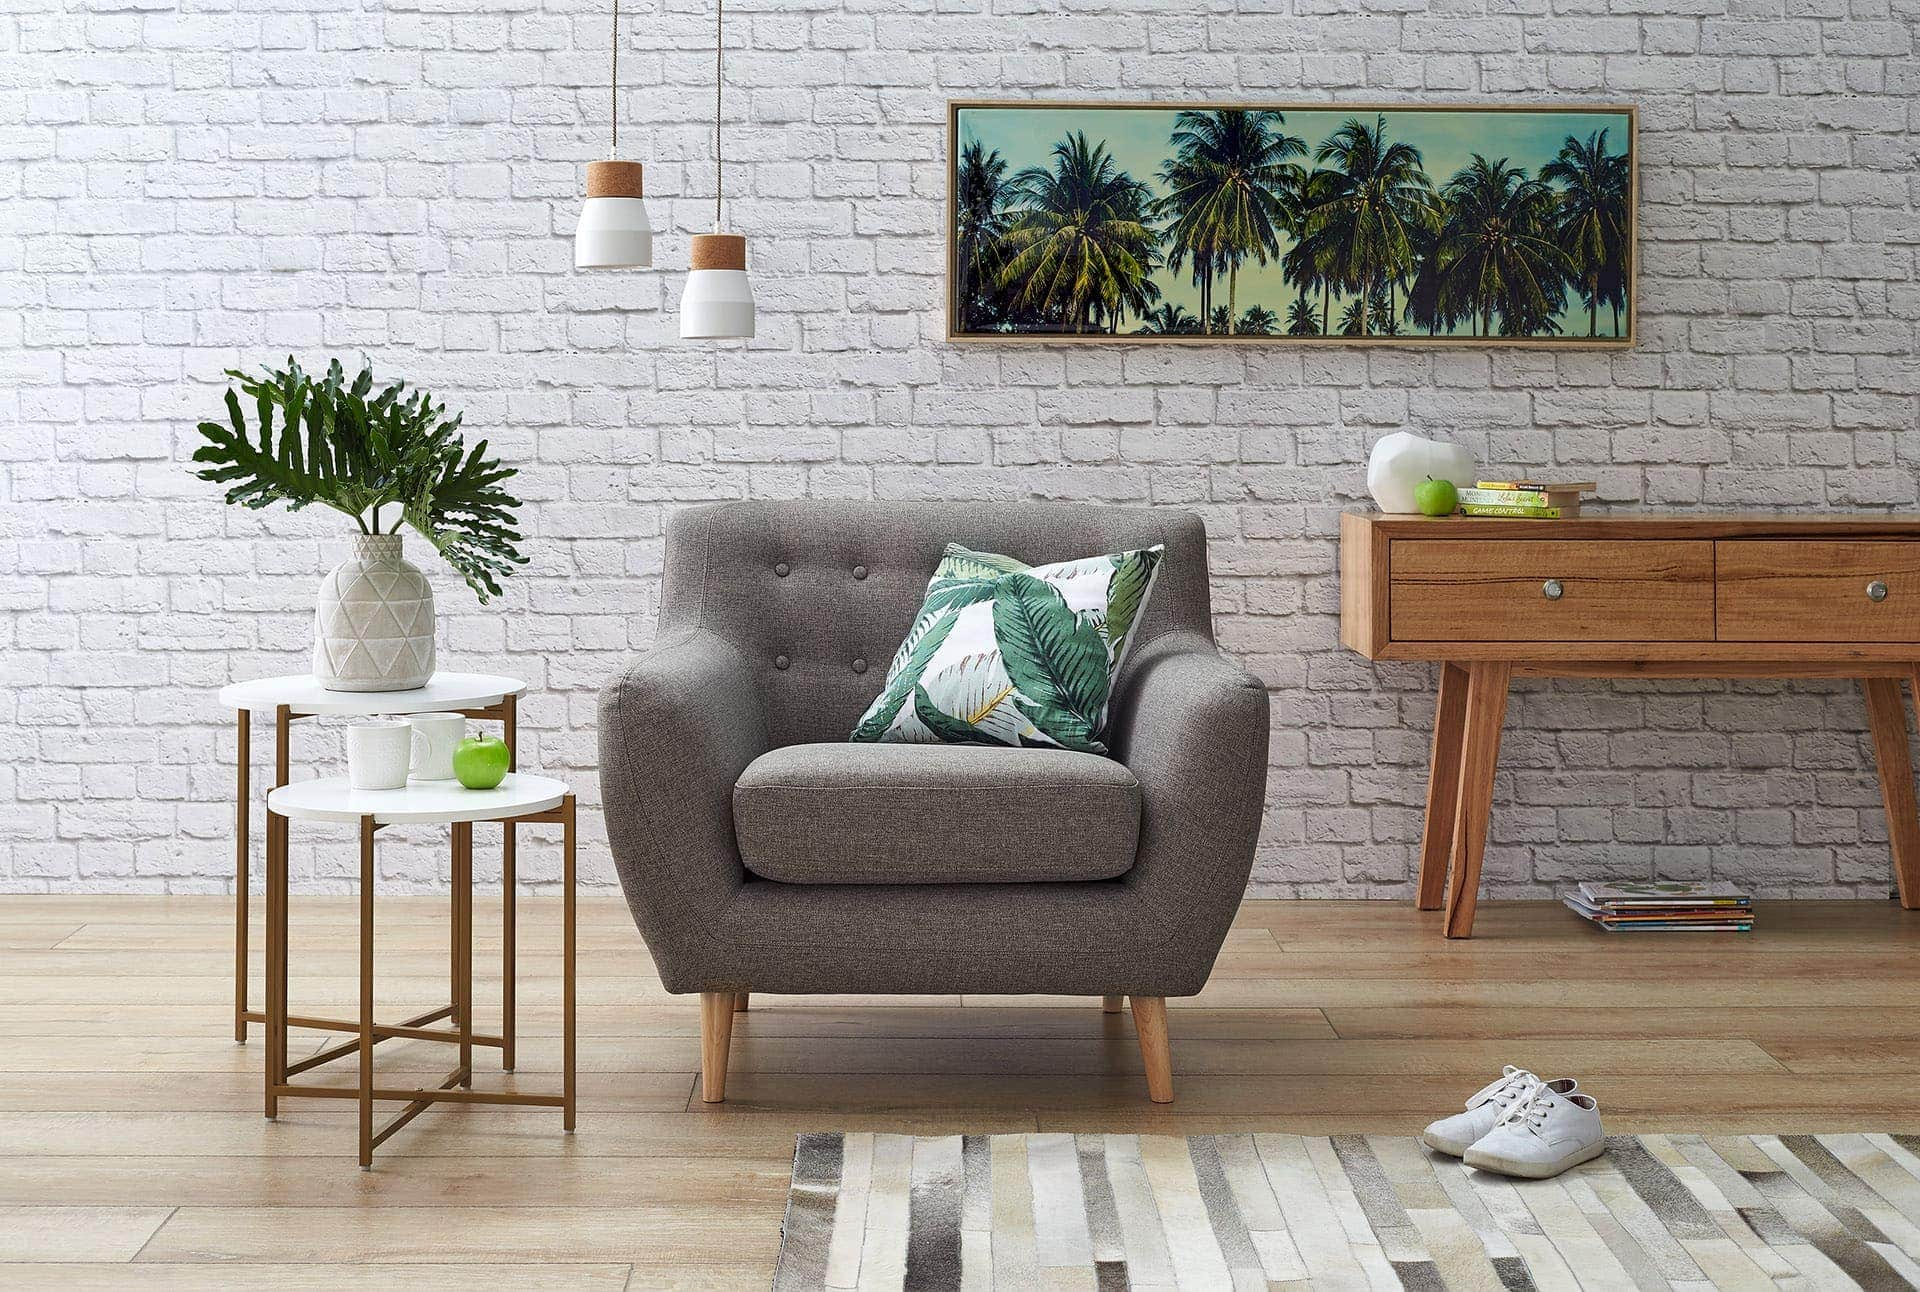 Poppy Armchair in Taupe from focus on furniture springvale homemaker centre